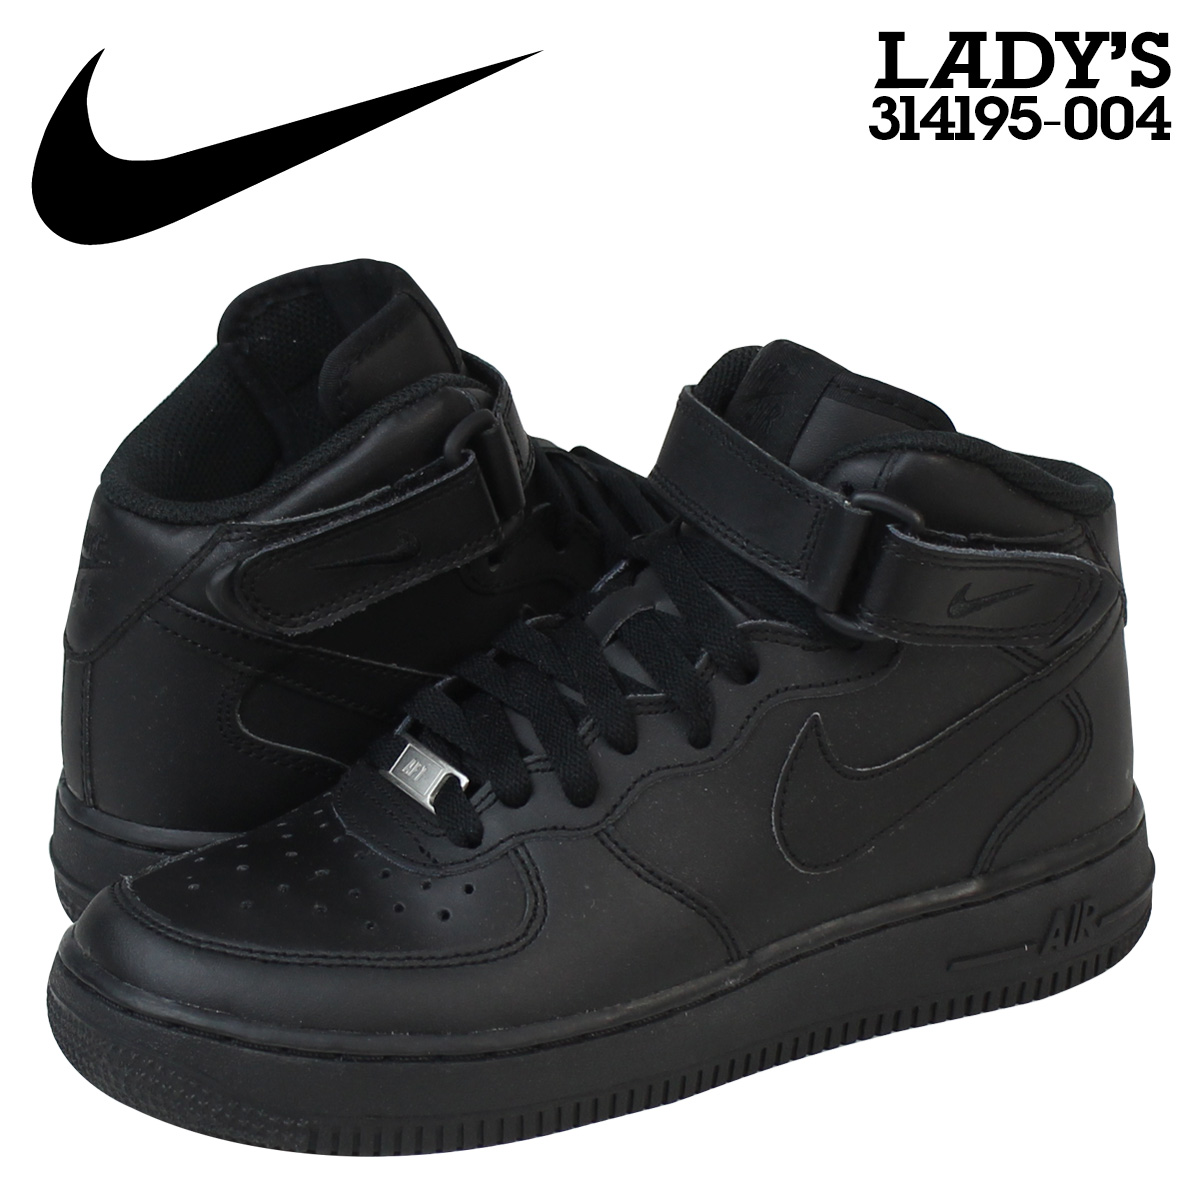 2756af558f4 Nike NIKE Womens AIR FORCE 1 MID GS sneakers air force 1 mid leather Kids  Girls Junior kids GIRLS 314195-004 BLACK BLACK black  2   6 new in stock   ...